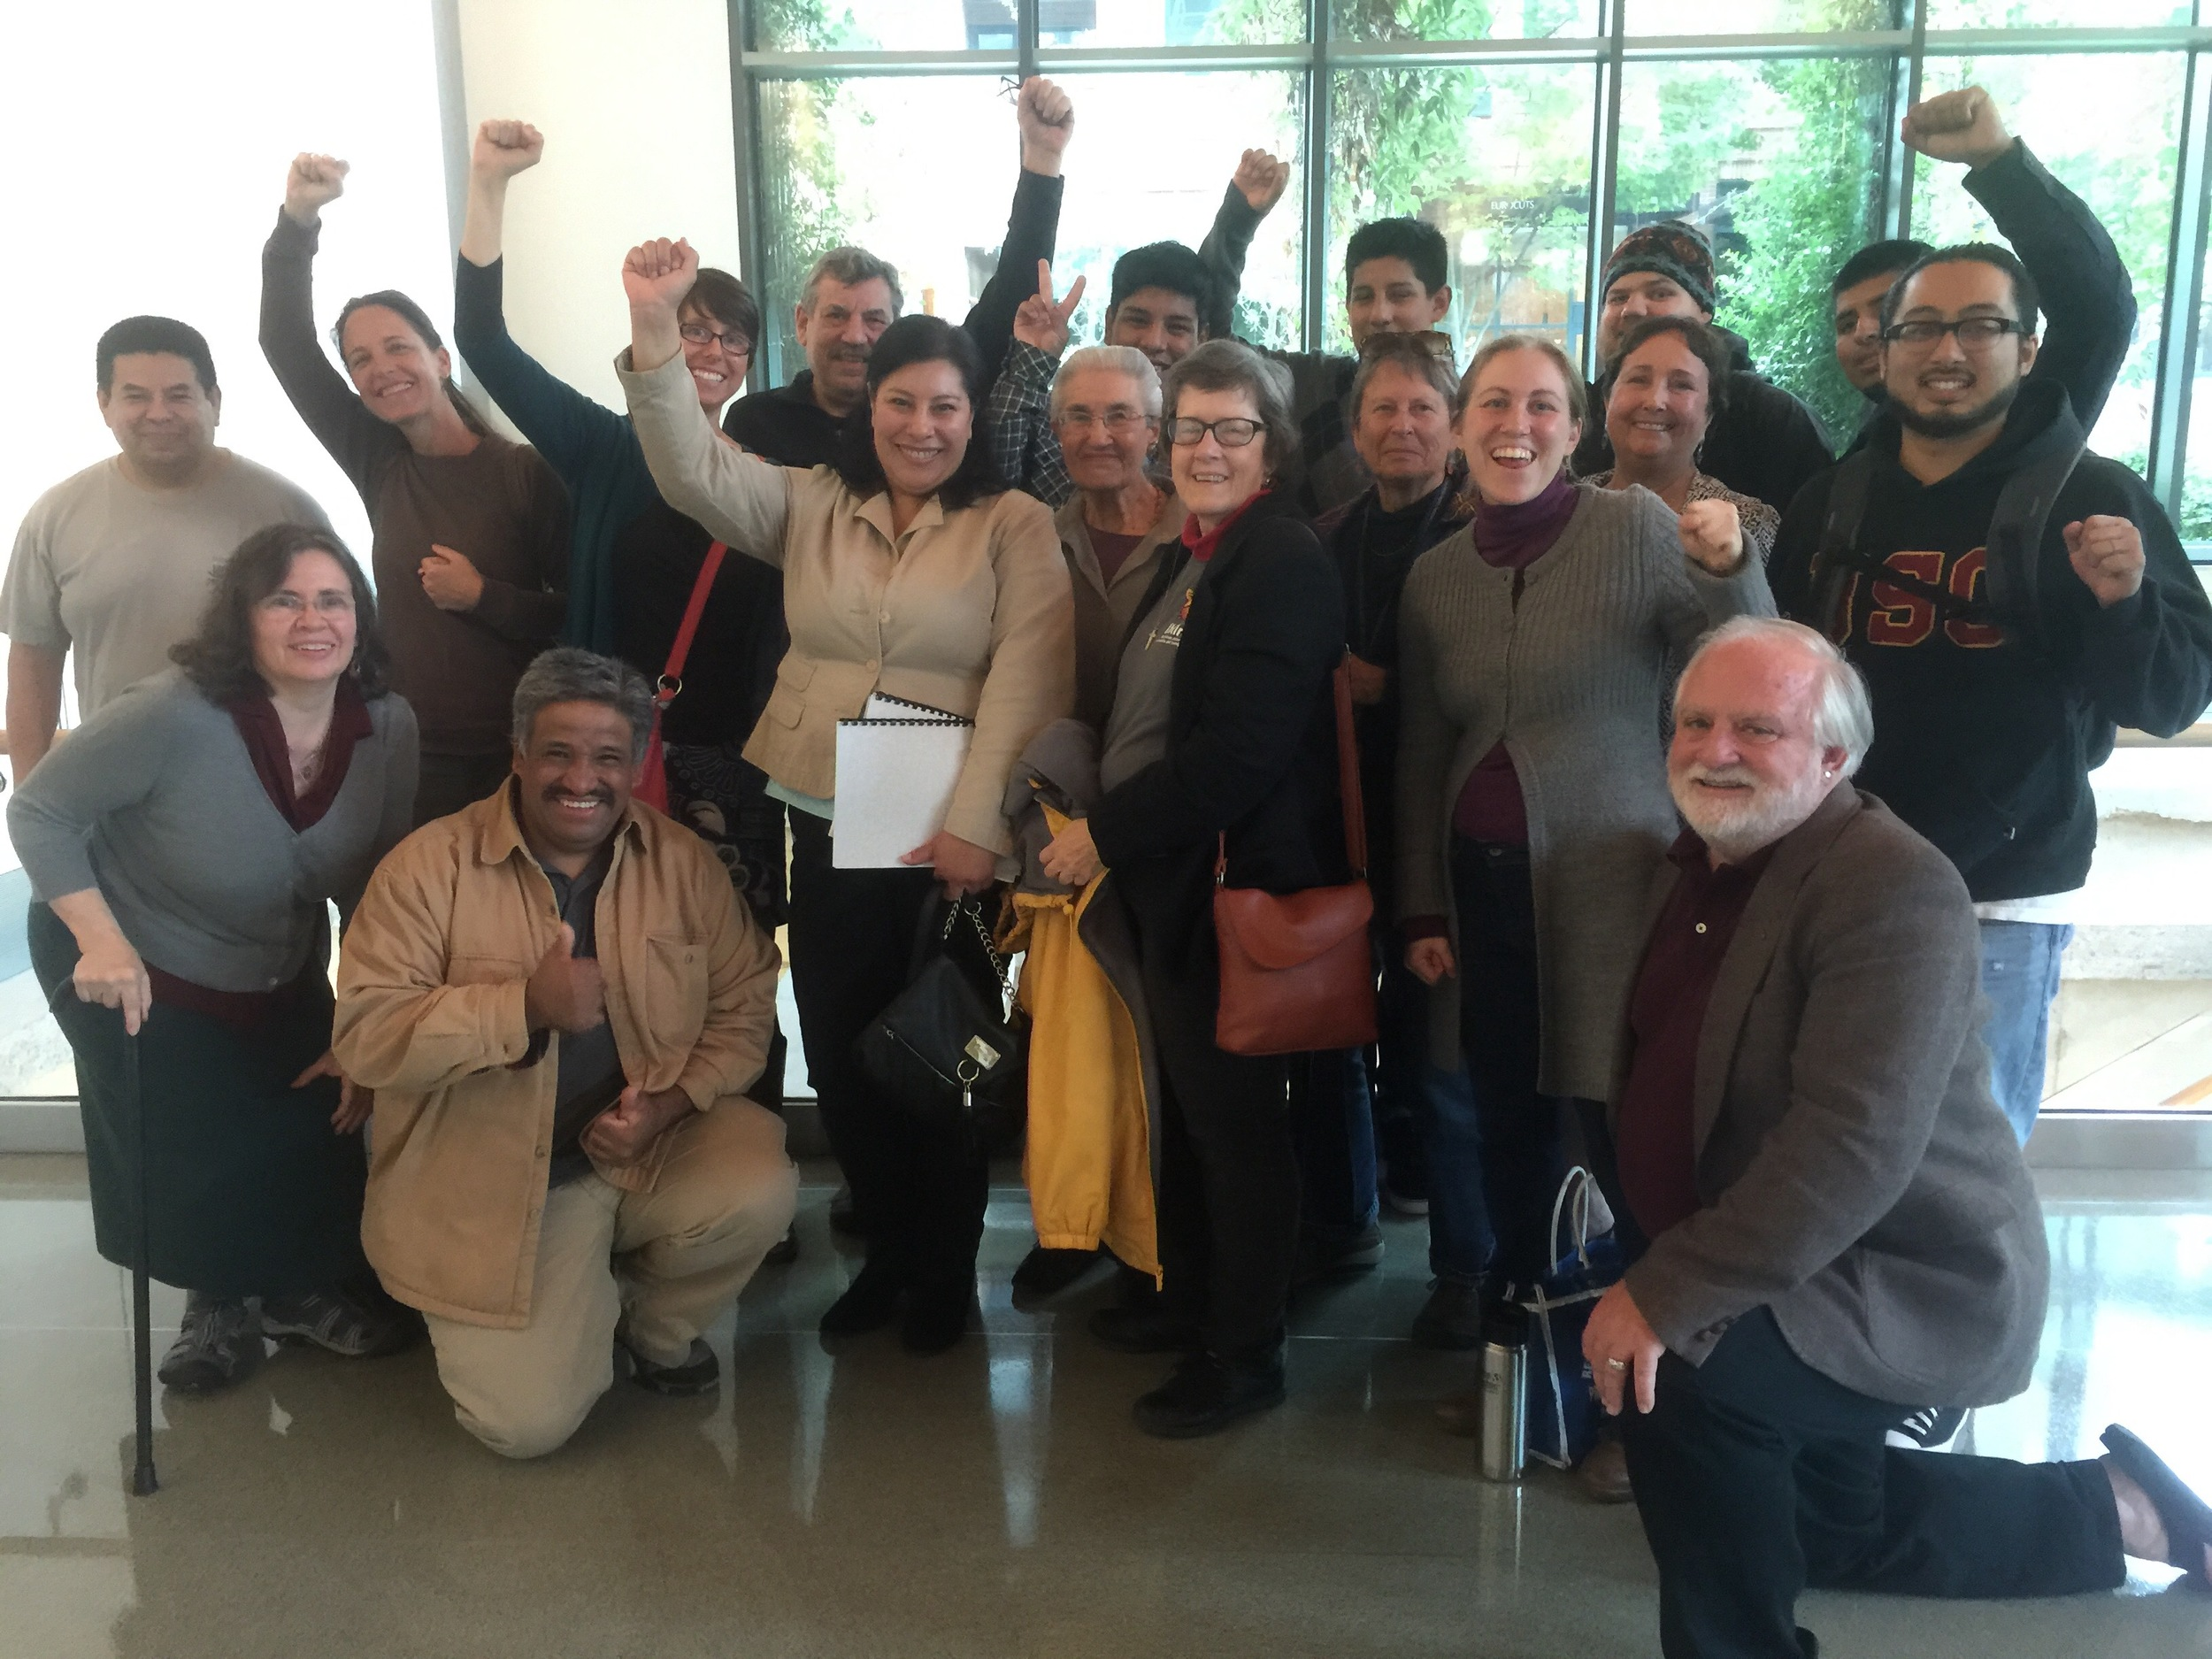 IMIrJ volunteers celebrating victory after accompanying a community member to his court hearing where the judge ruled in his favor.